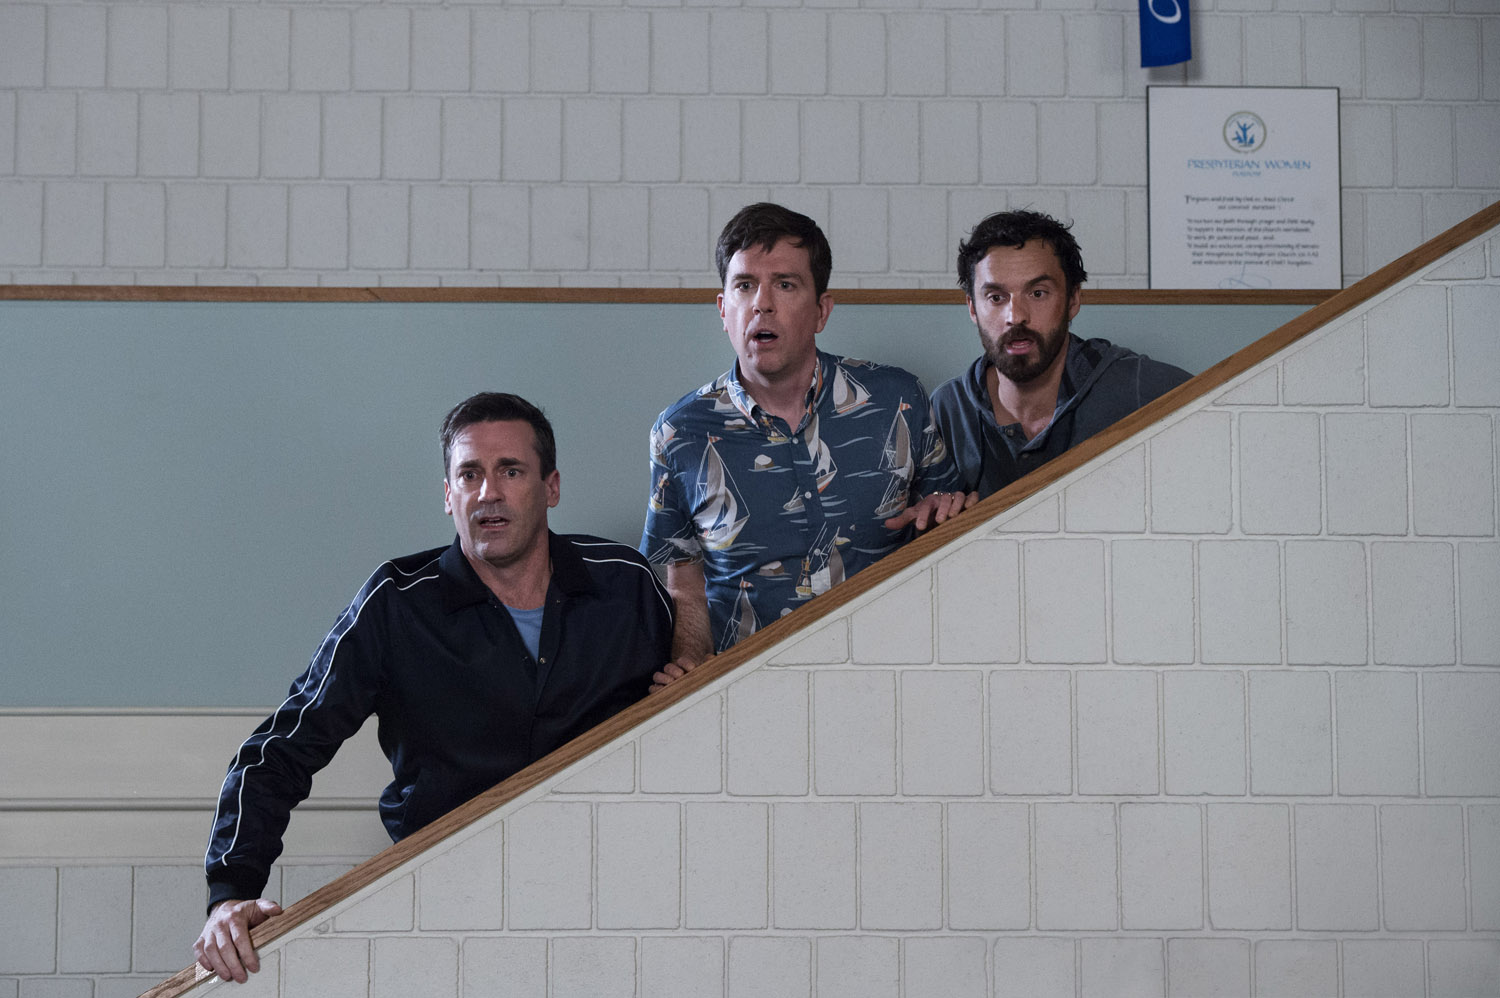 Jon Hamm, Ed Helms, Jake Johnson